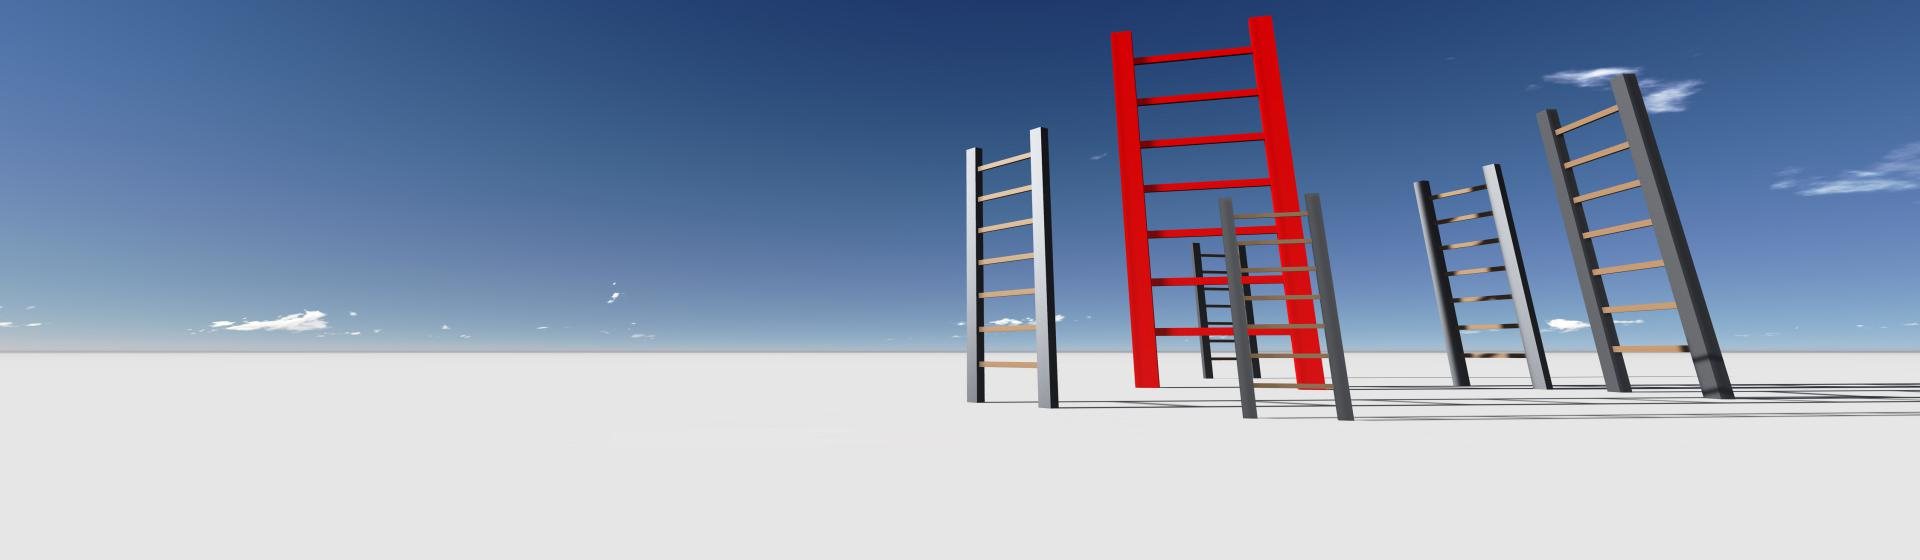 Ladder of success myih4  d